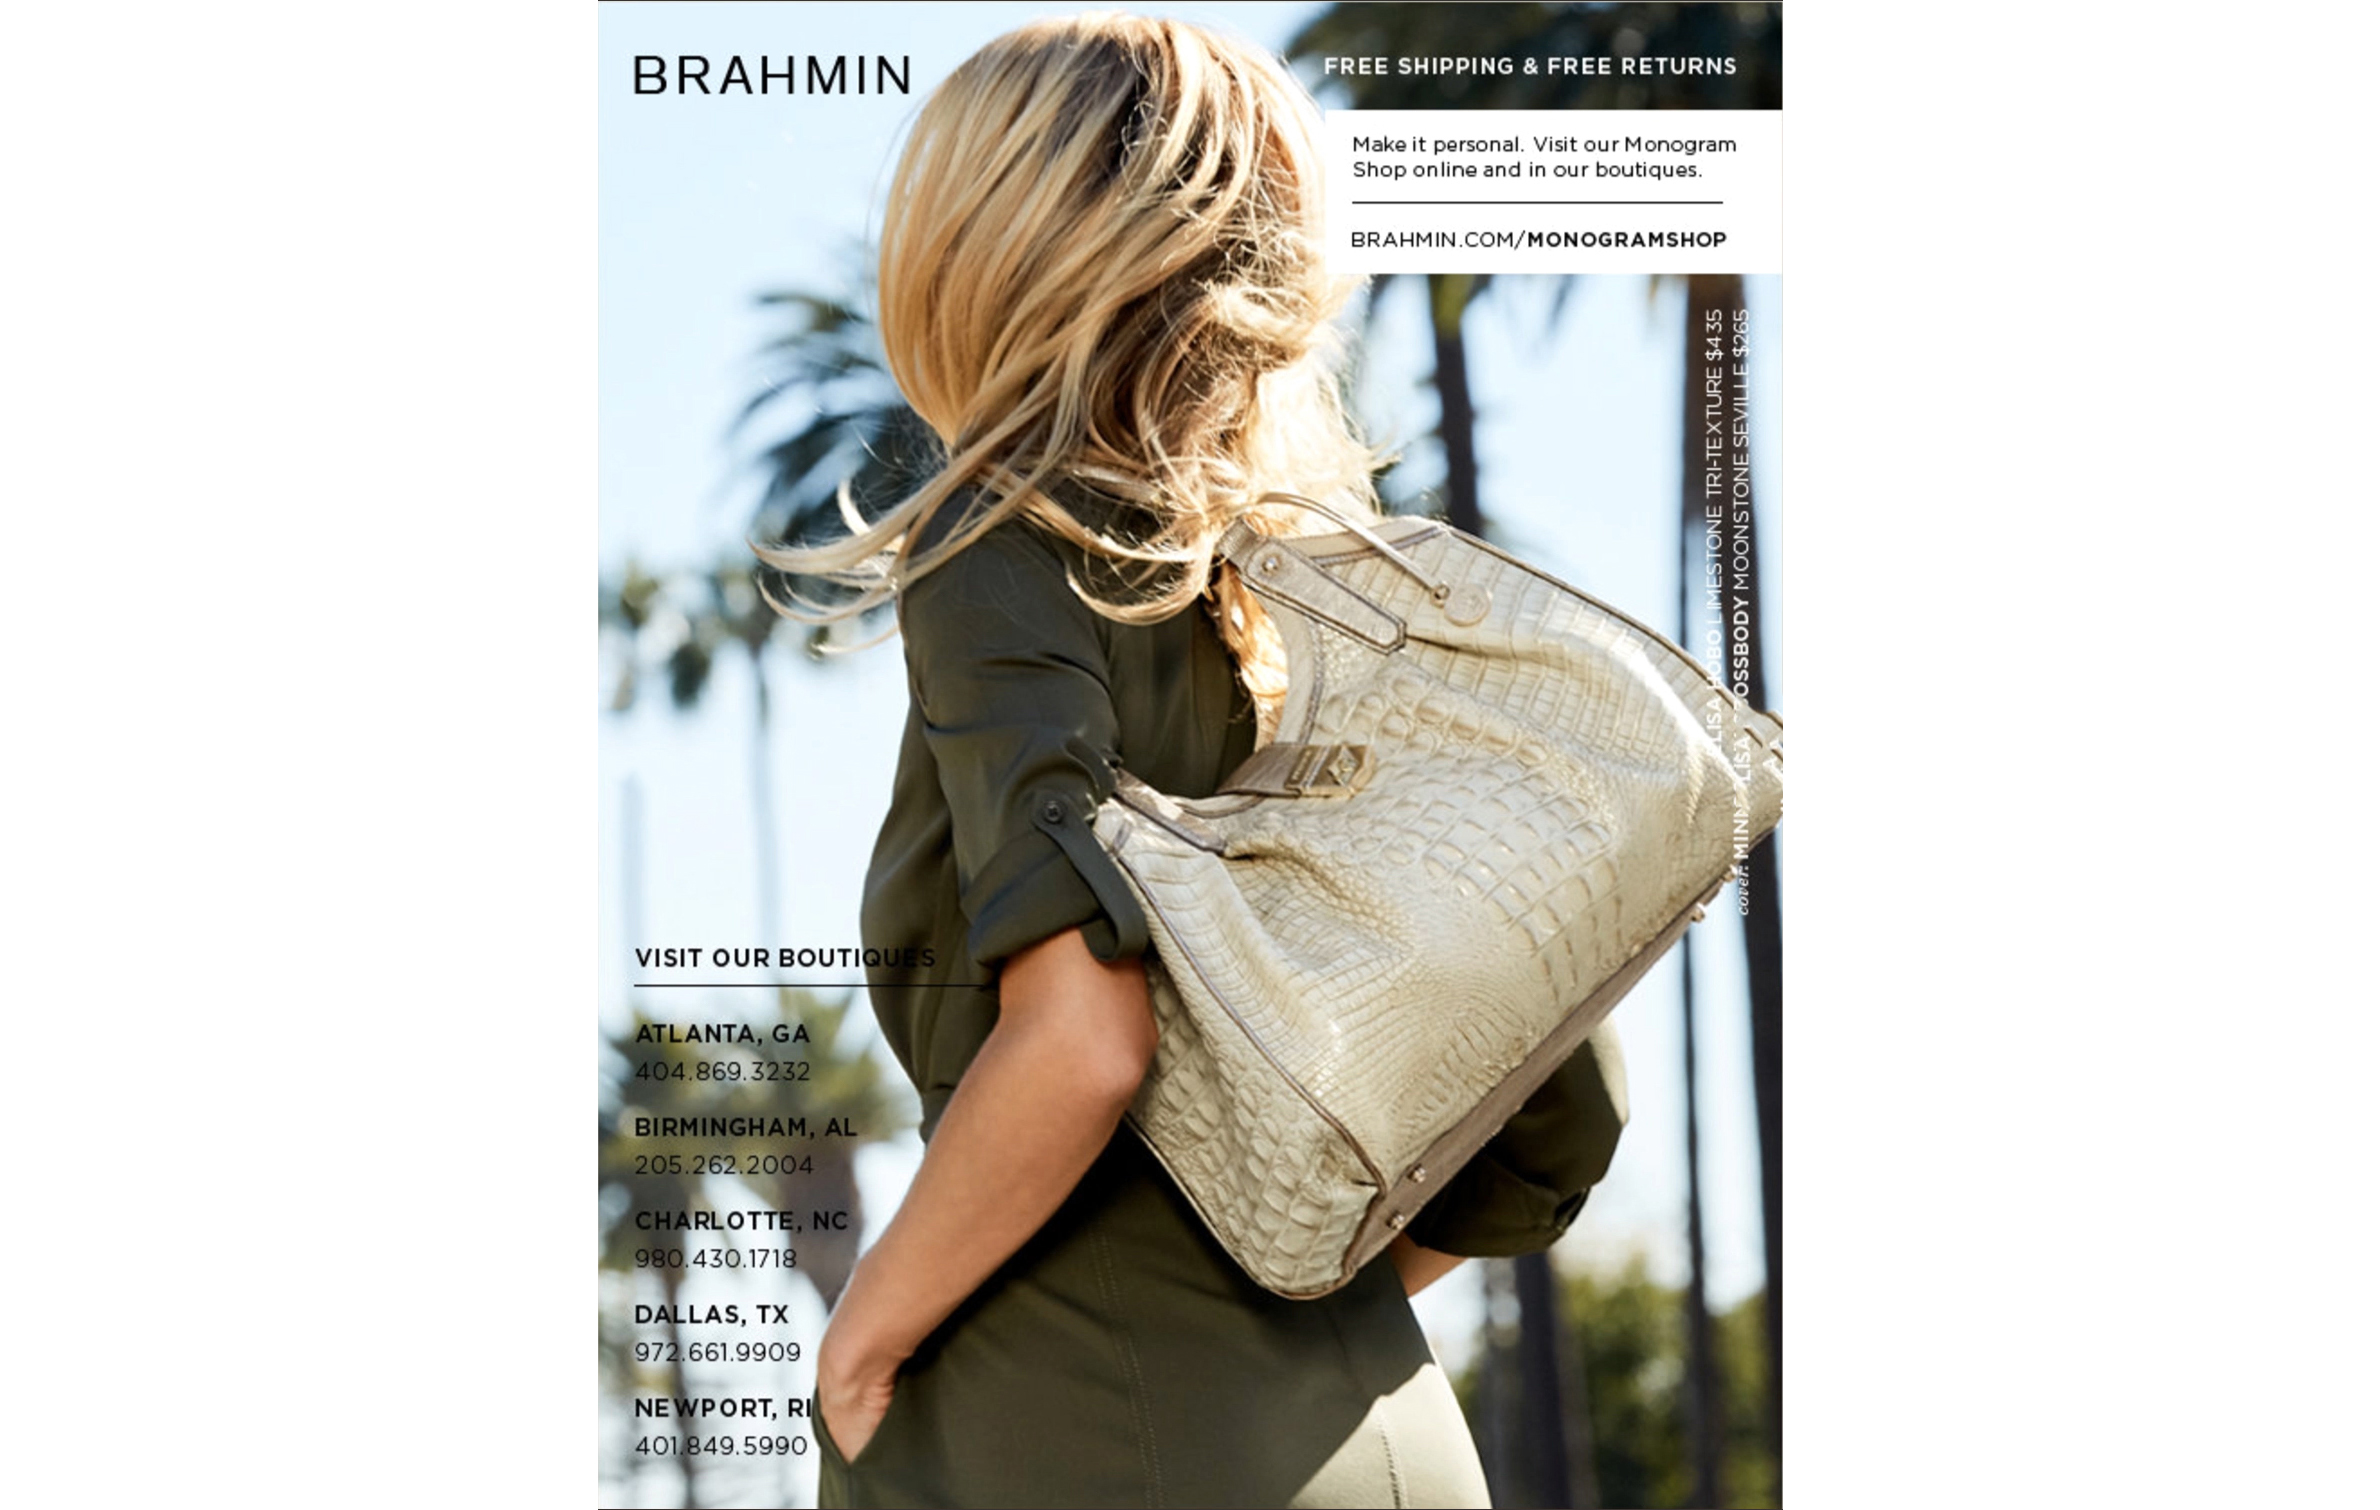 Brahmin_Summer Catalog_Video_17.jpg